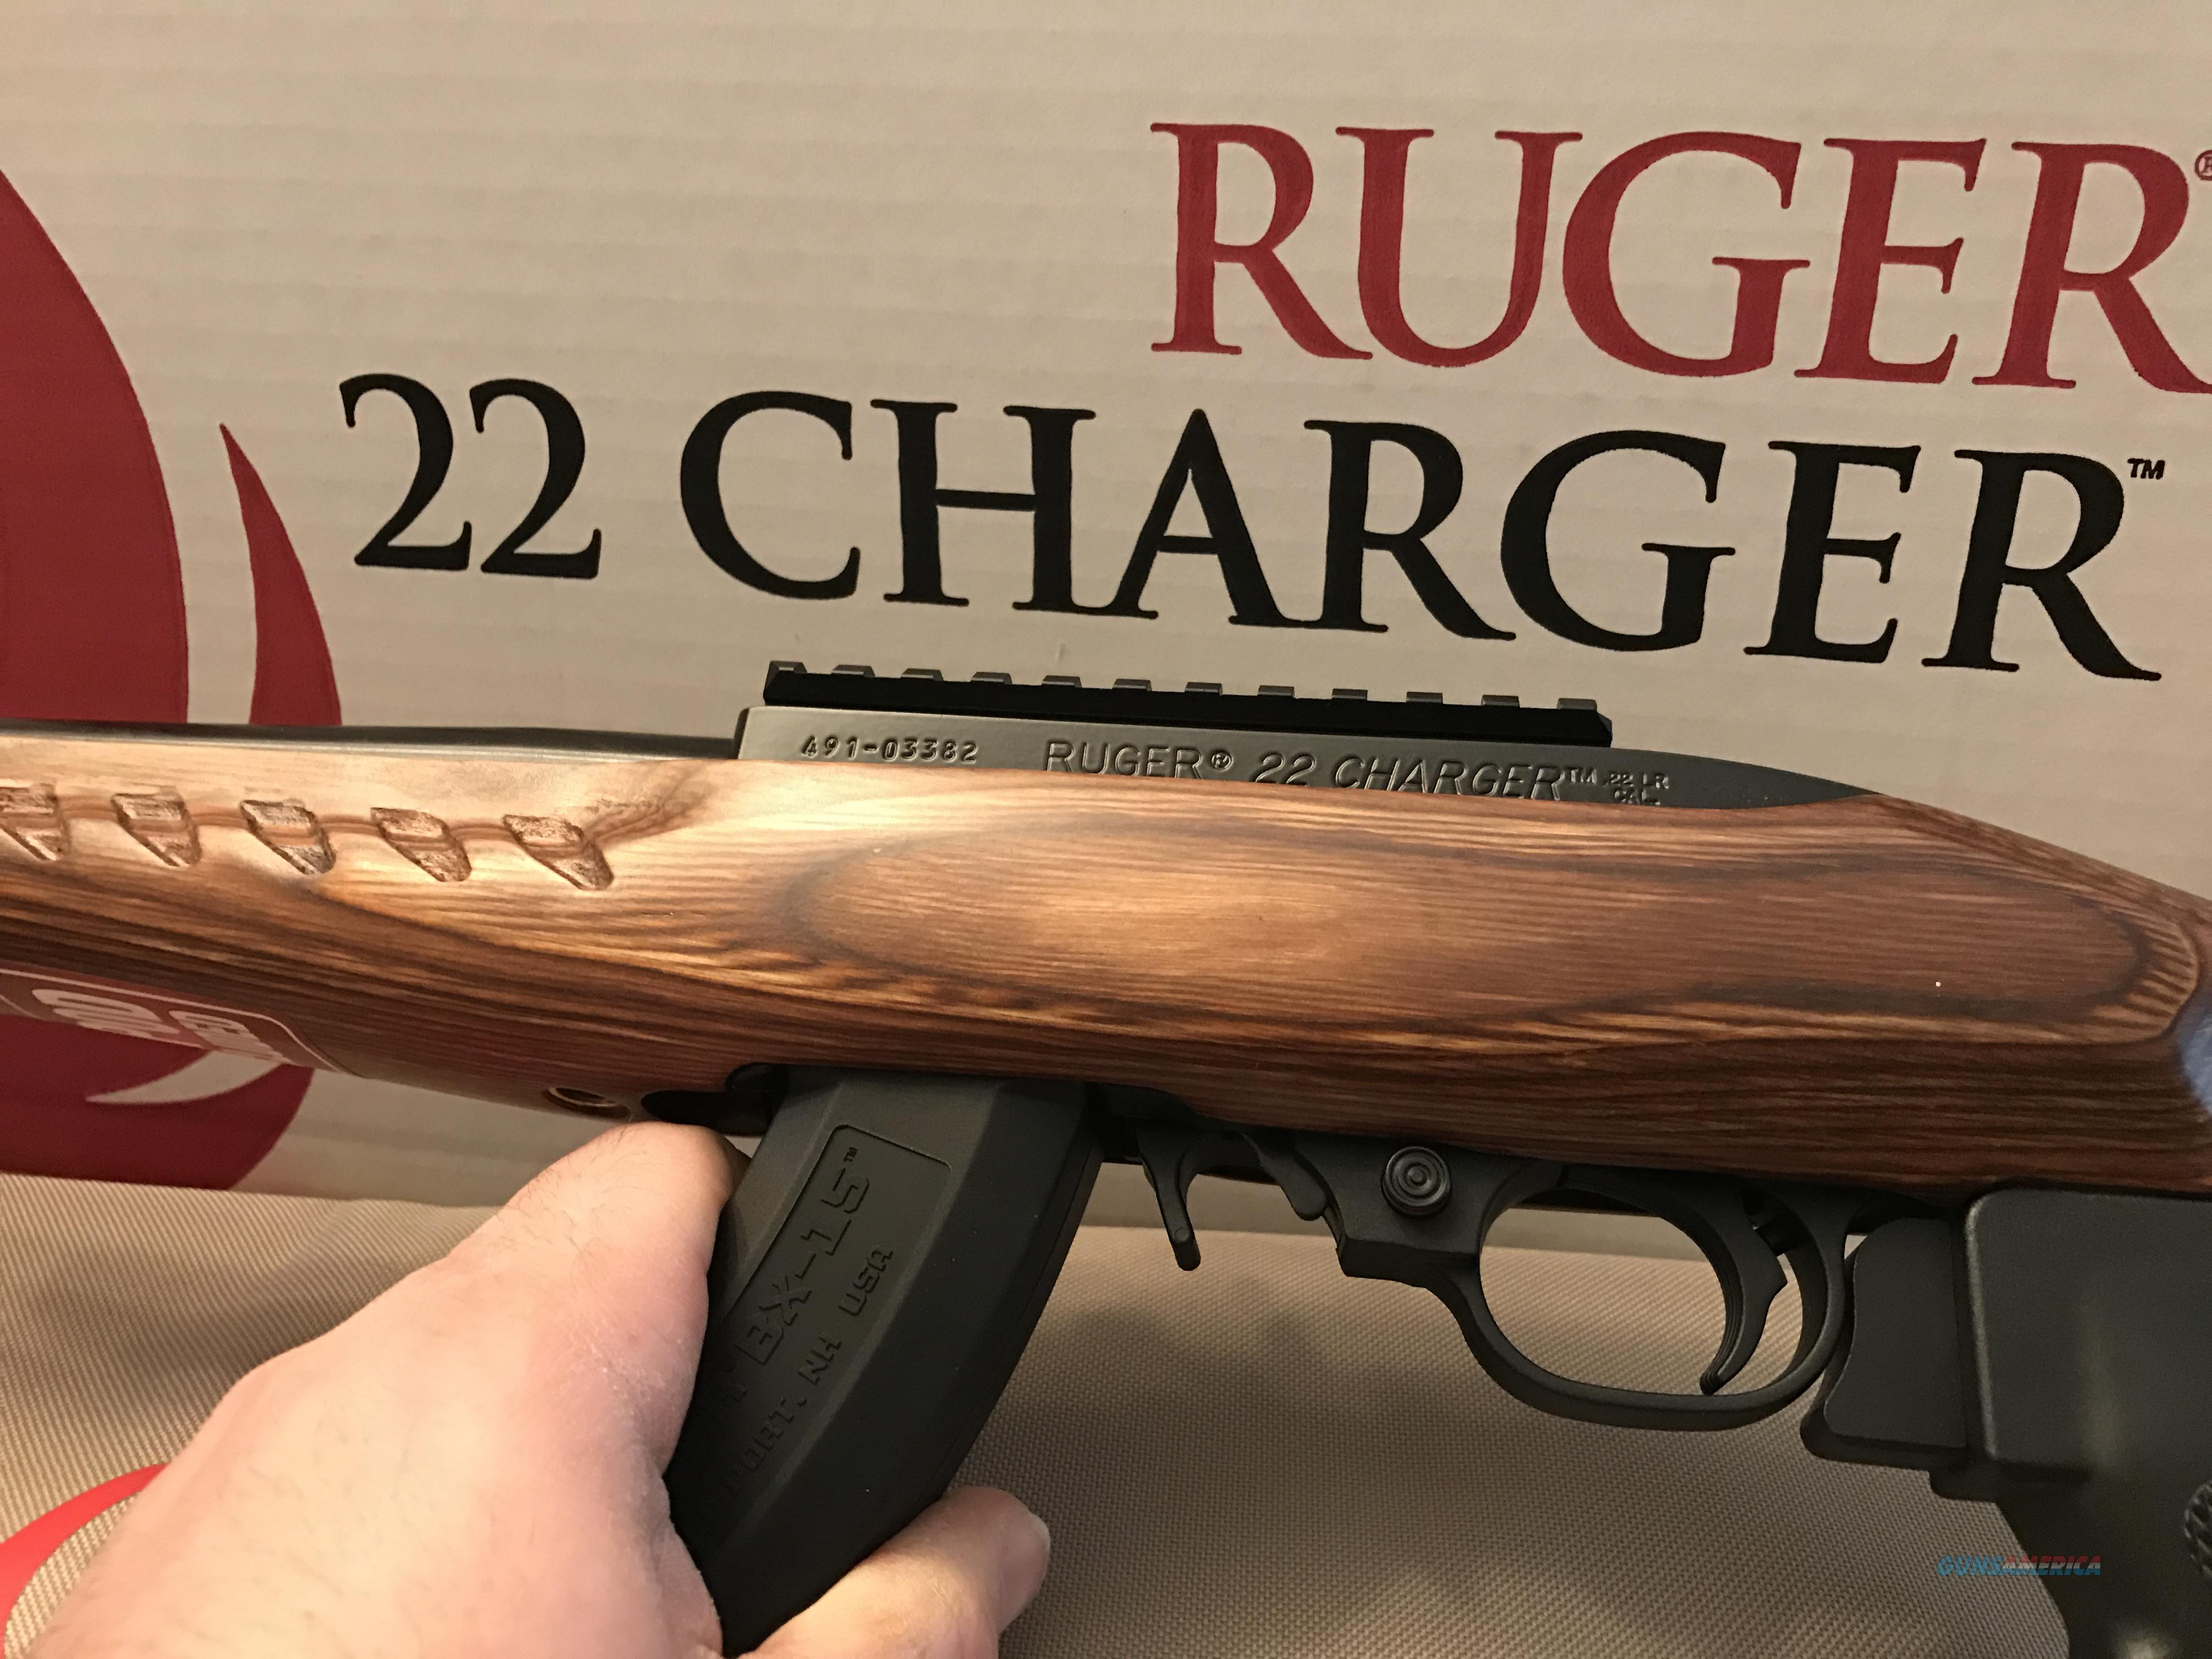 RUGER CHARGER 22LR - BROWN LAMINATE  Guns > Pistols > Ruger Semi-Auto Pistols > Charger Series